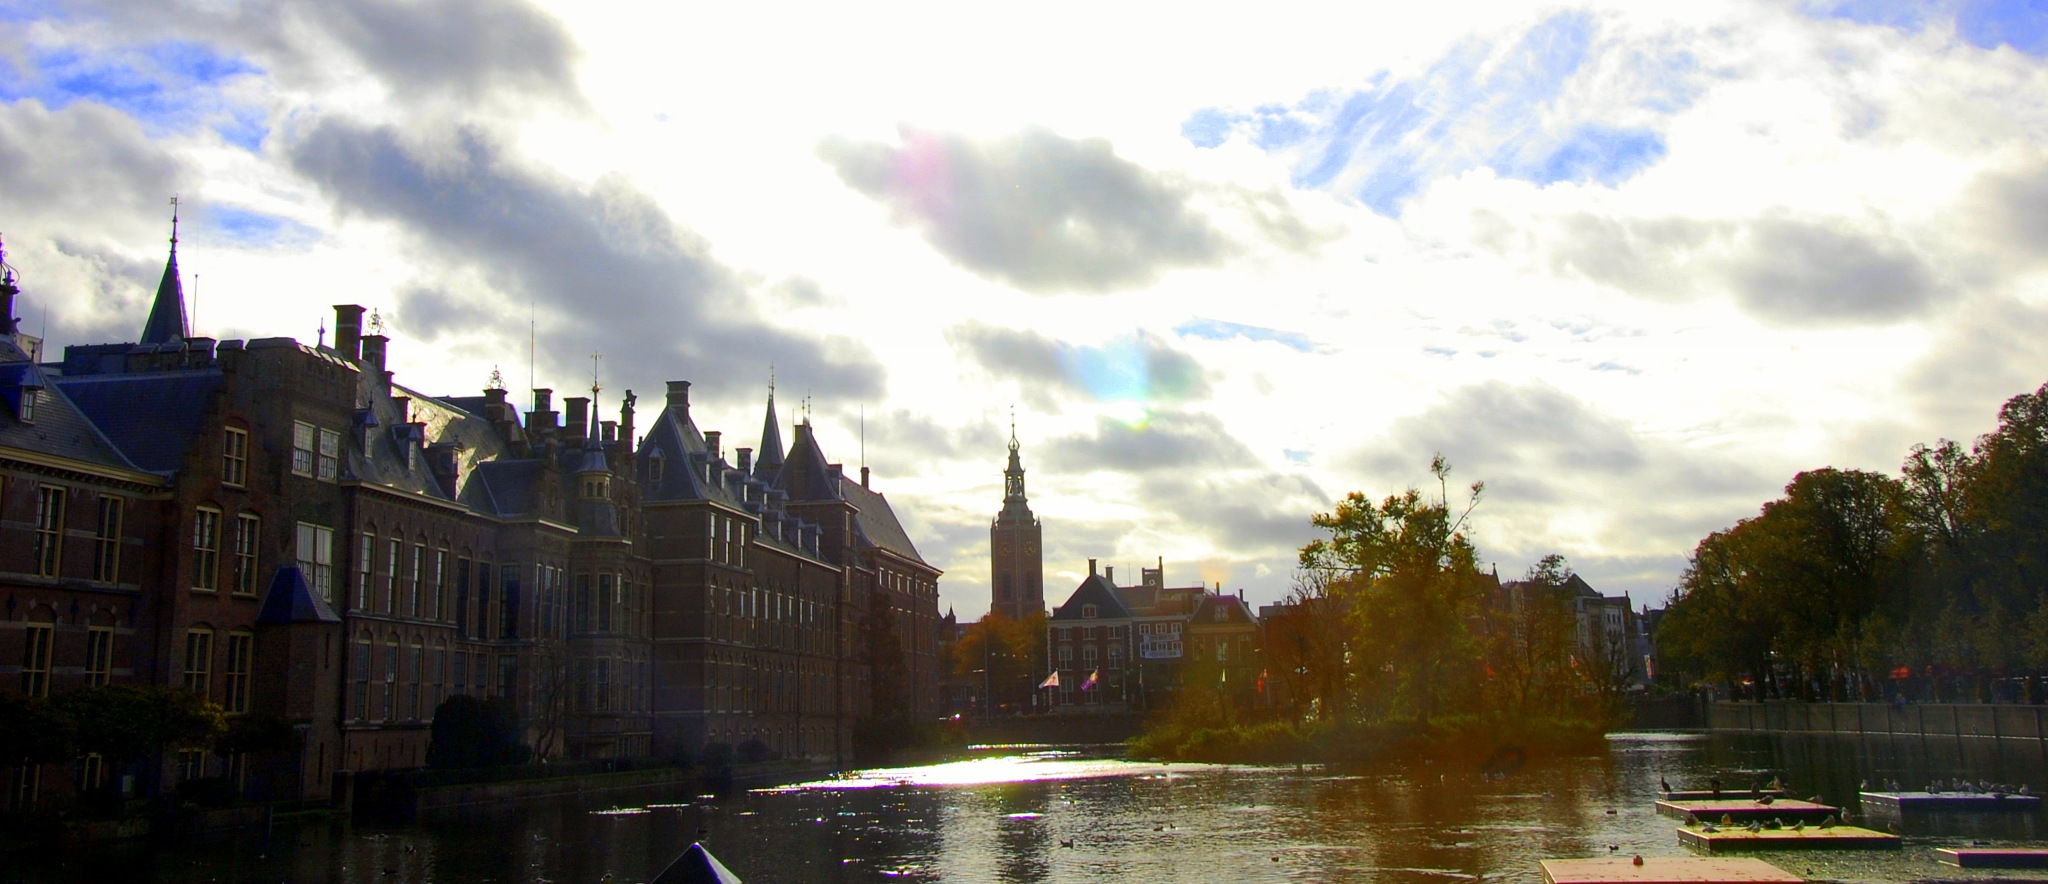 Golden October in The Hague by goga.dt